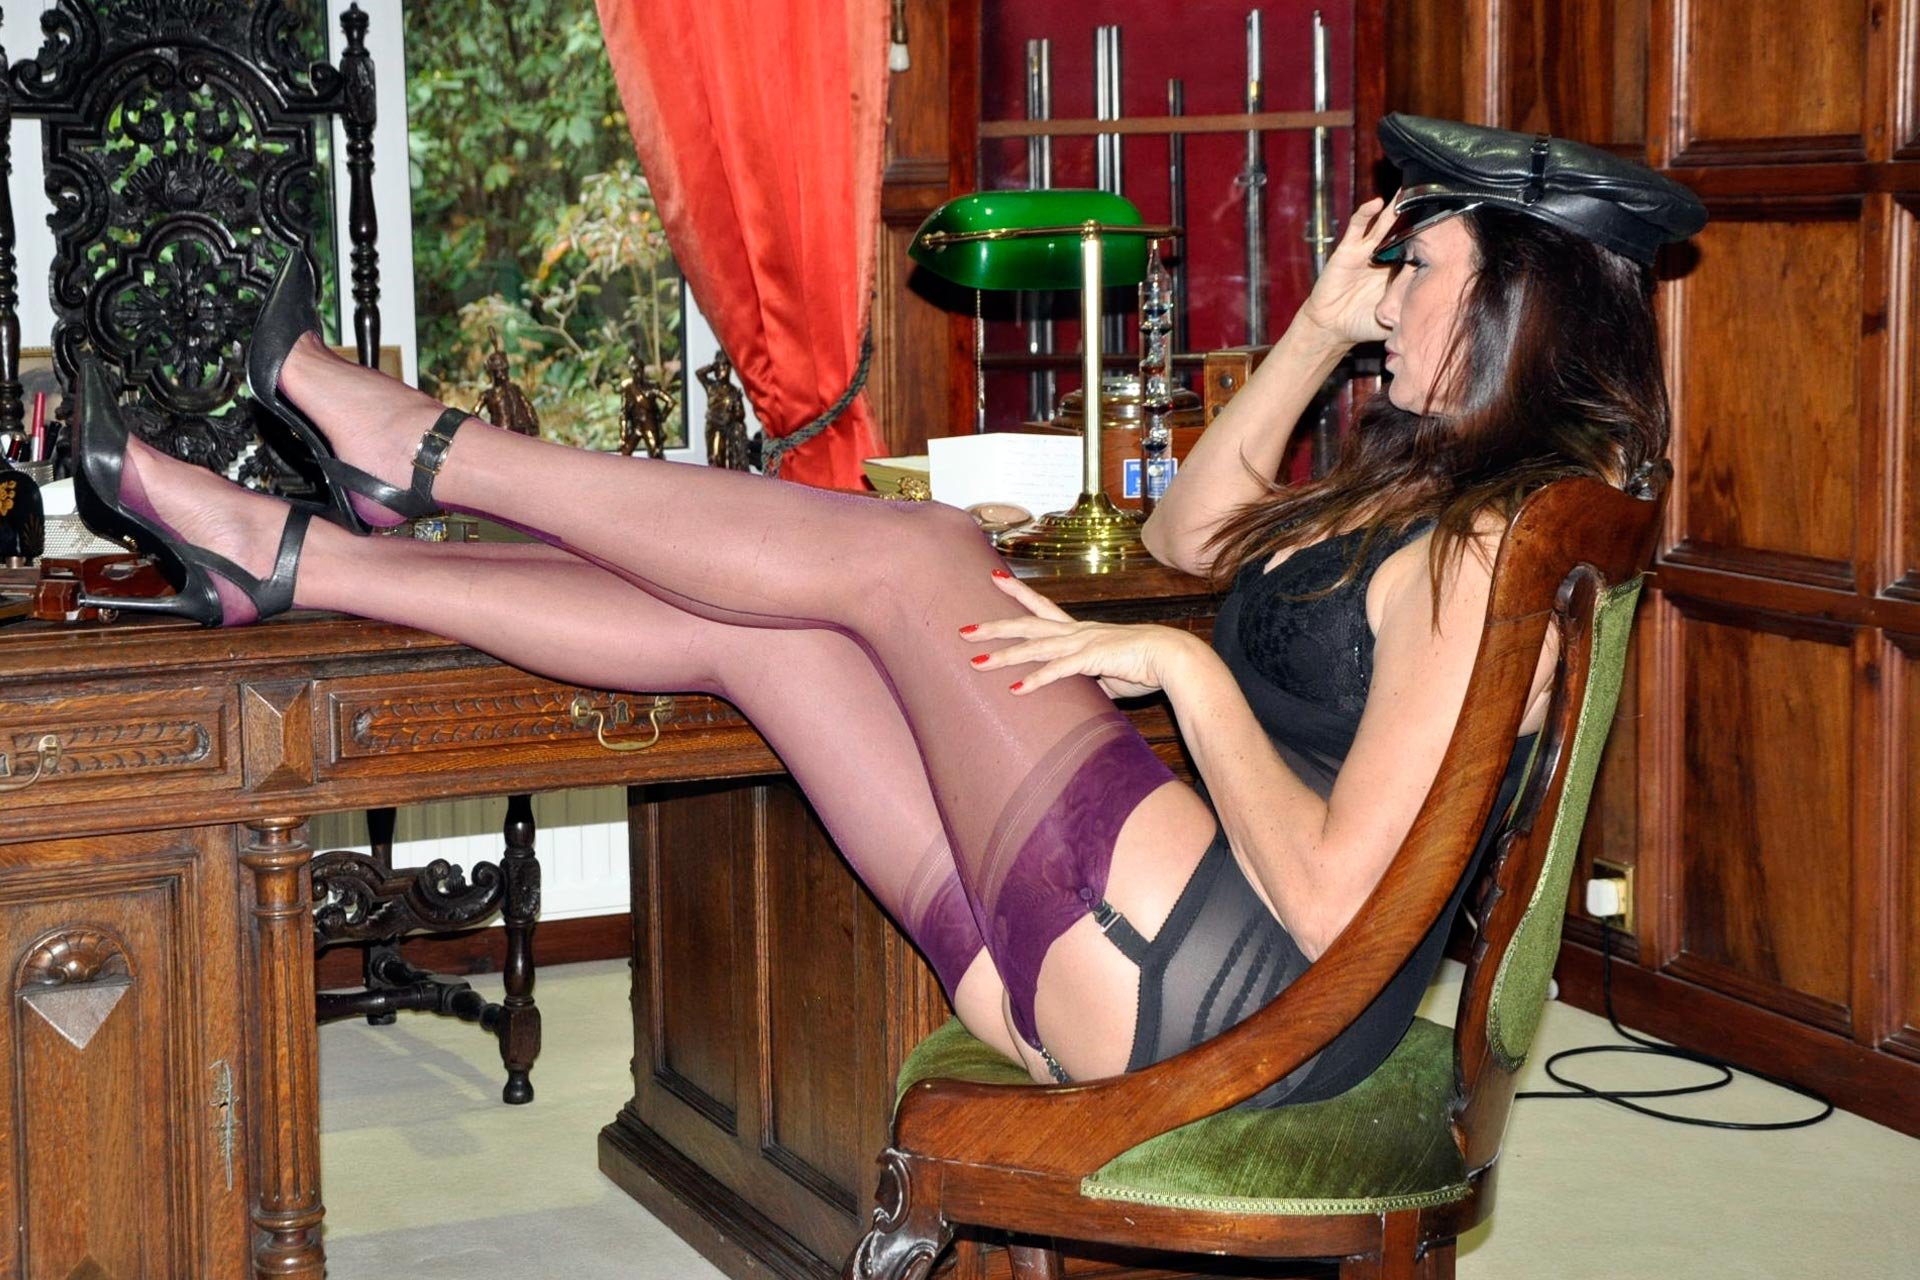 Nylon Jane shows off purple stockings